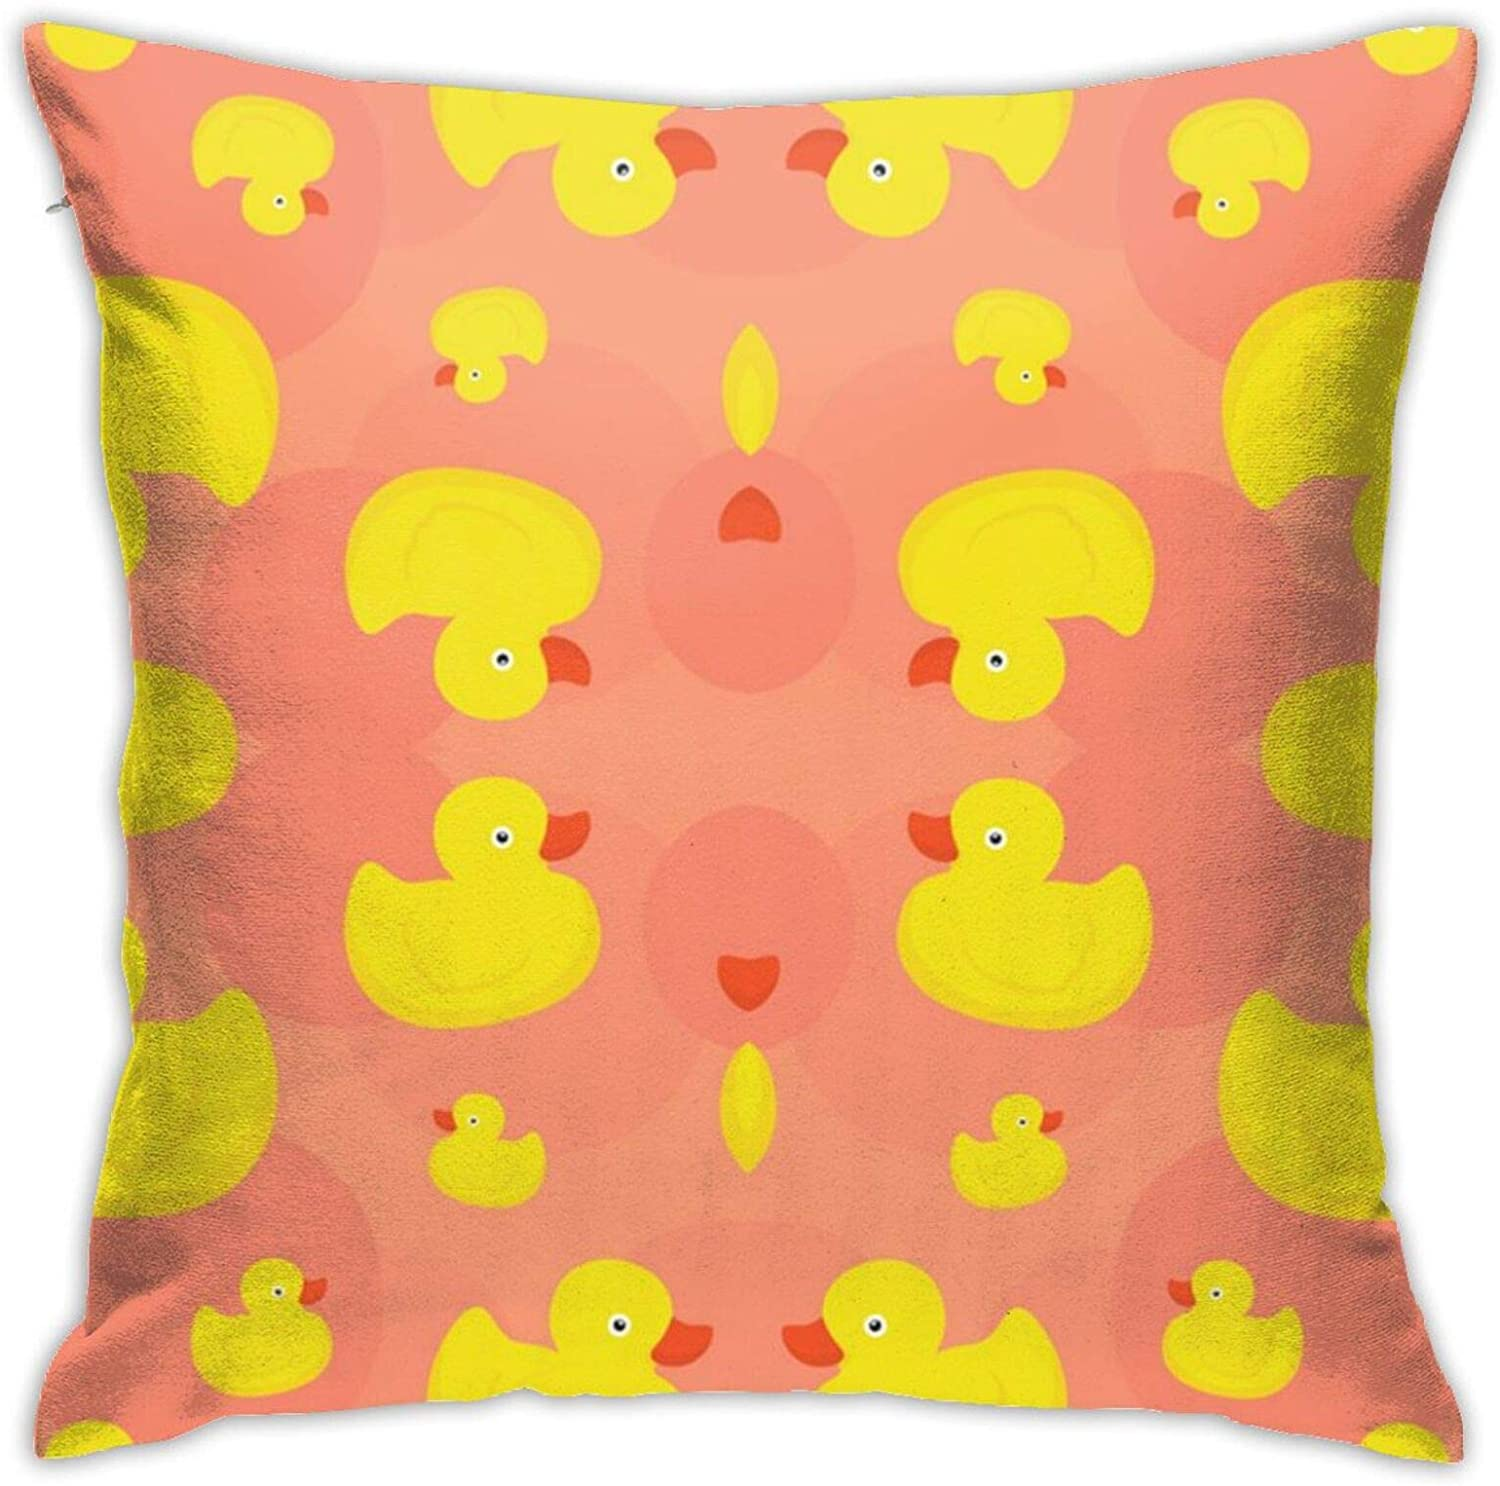 antcreptson Rubber Duck (Pink) Throw Pillow Case Cushion Cover for Sofa Couch Living Room Home Decor - Vintage Pillow Case for Book Lover/Bookworm/Librarian(18 x 18 Inch)